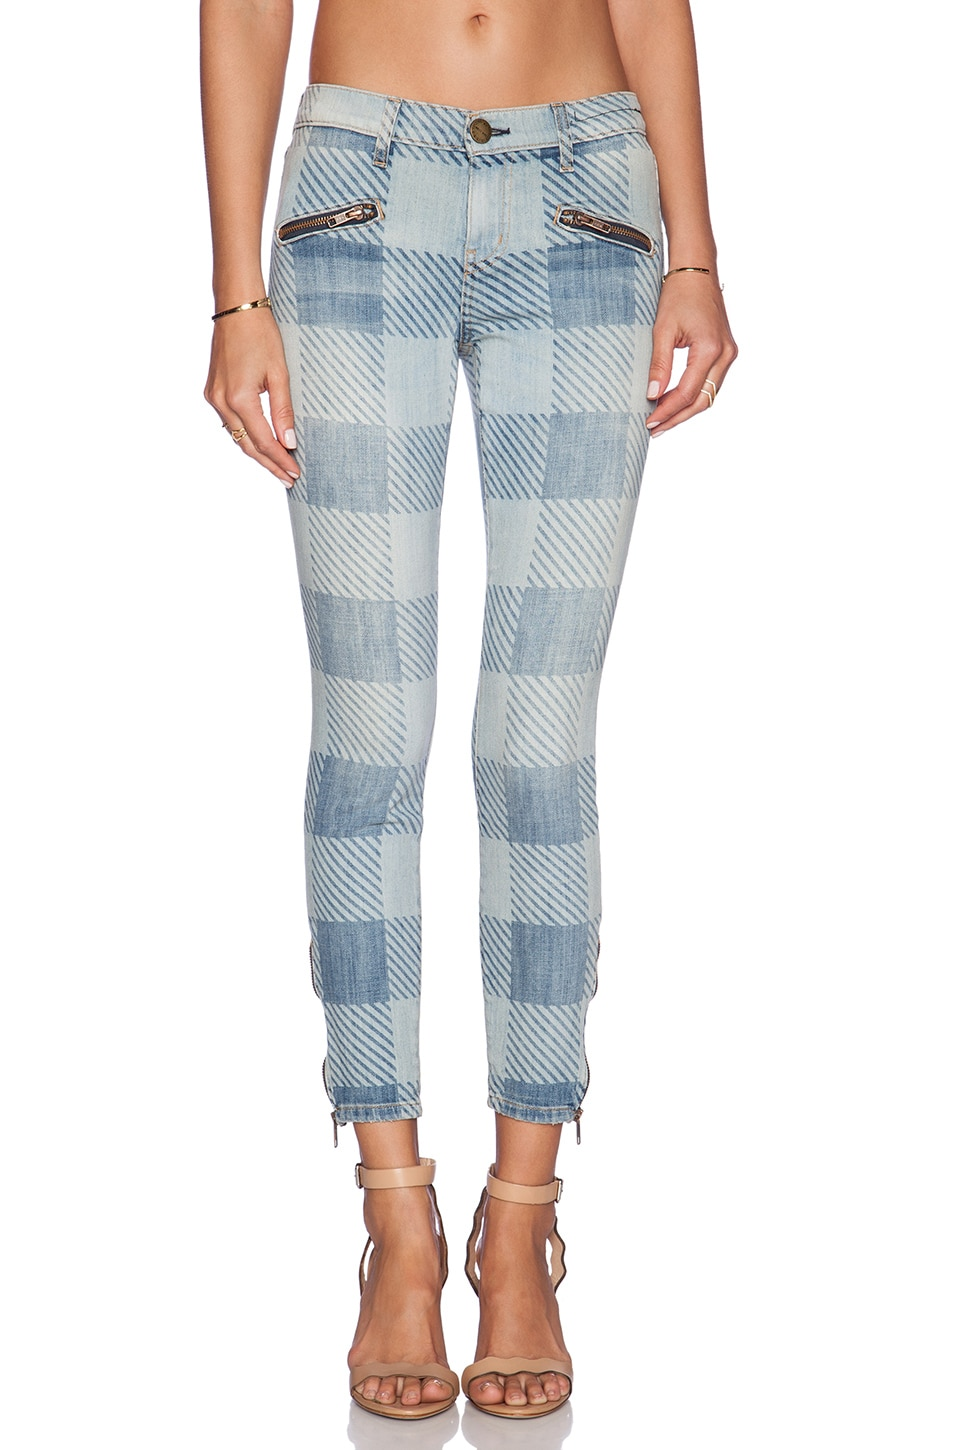 Current/Elliott The Soho Zip Stiletto in Discovery Plaid